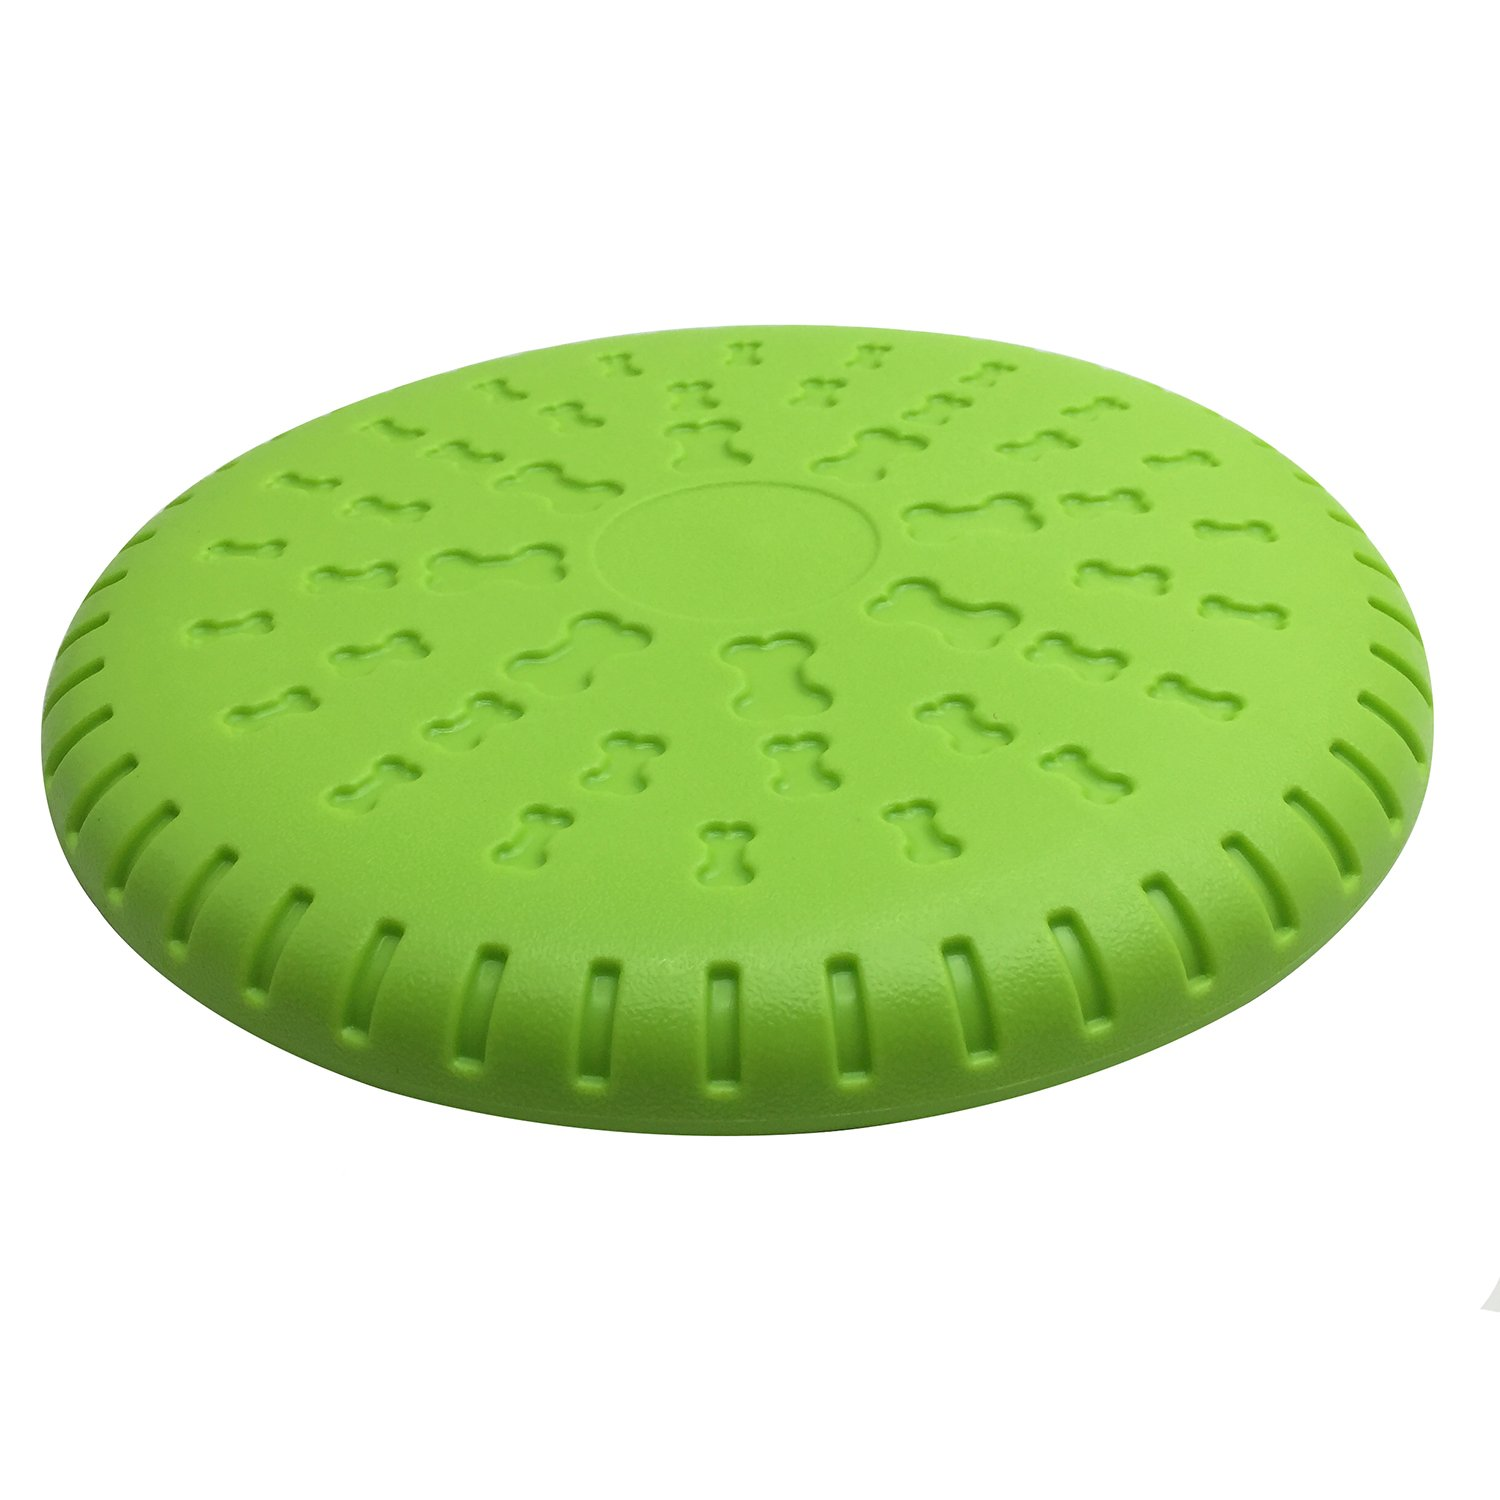 Pet Cuisine Dog Flying Disc Training Fetch Frisbee Outdoor Flyer Play Throw Dog Toy Chew Disk